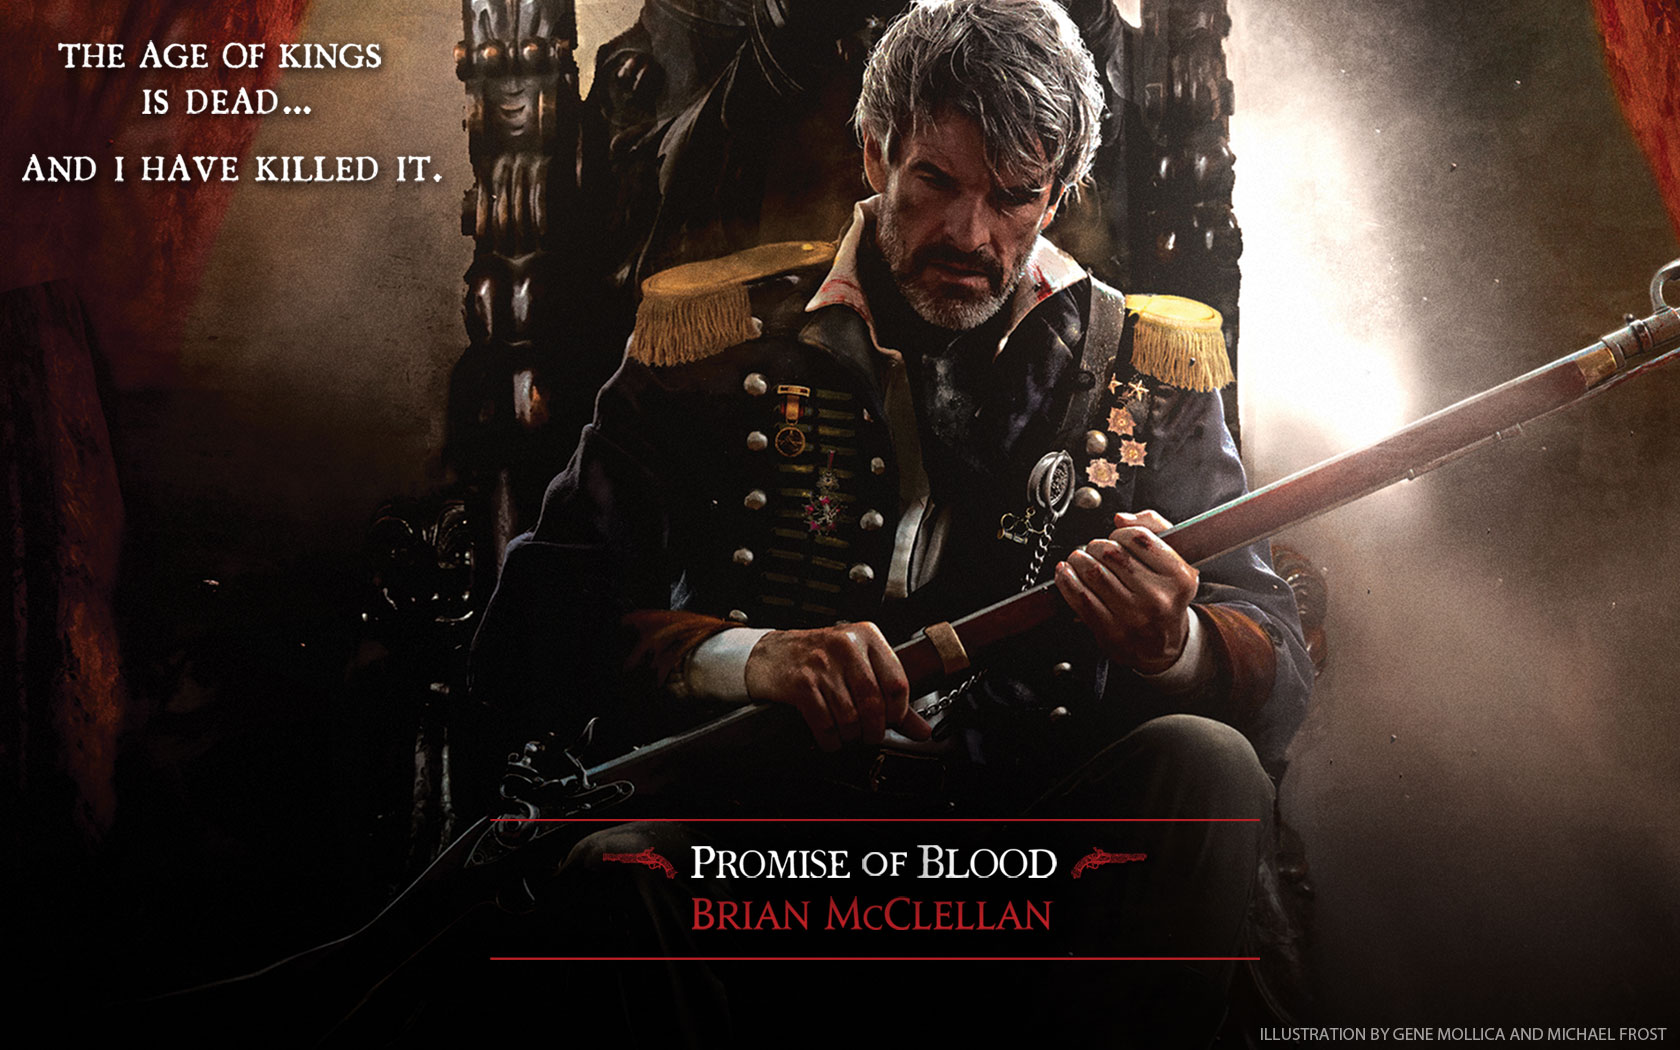 promise-of-blood-1680x1050.jpg